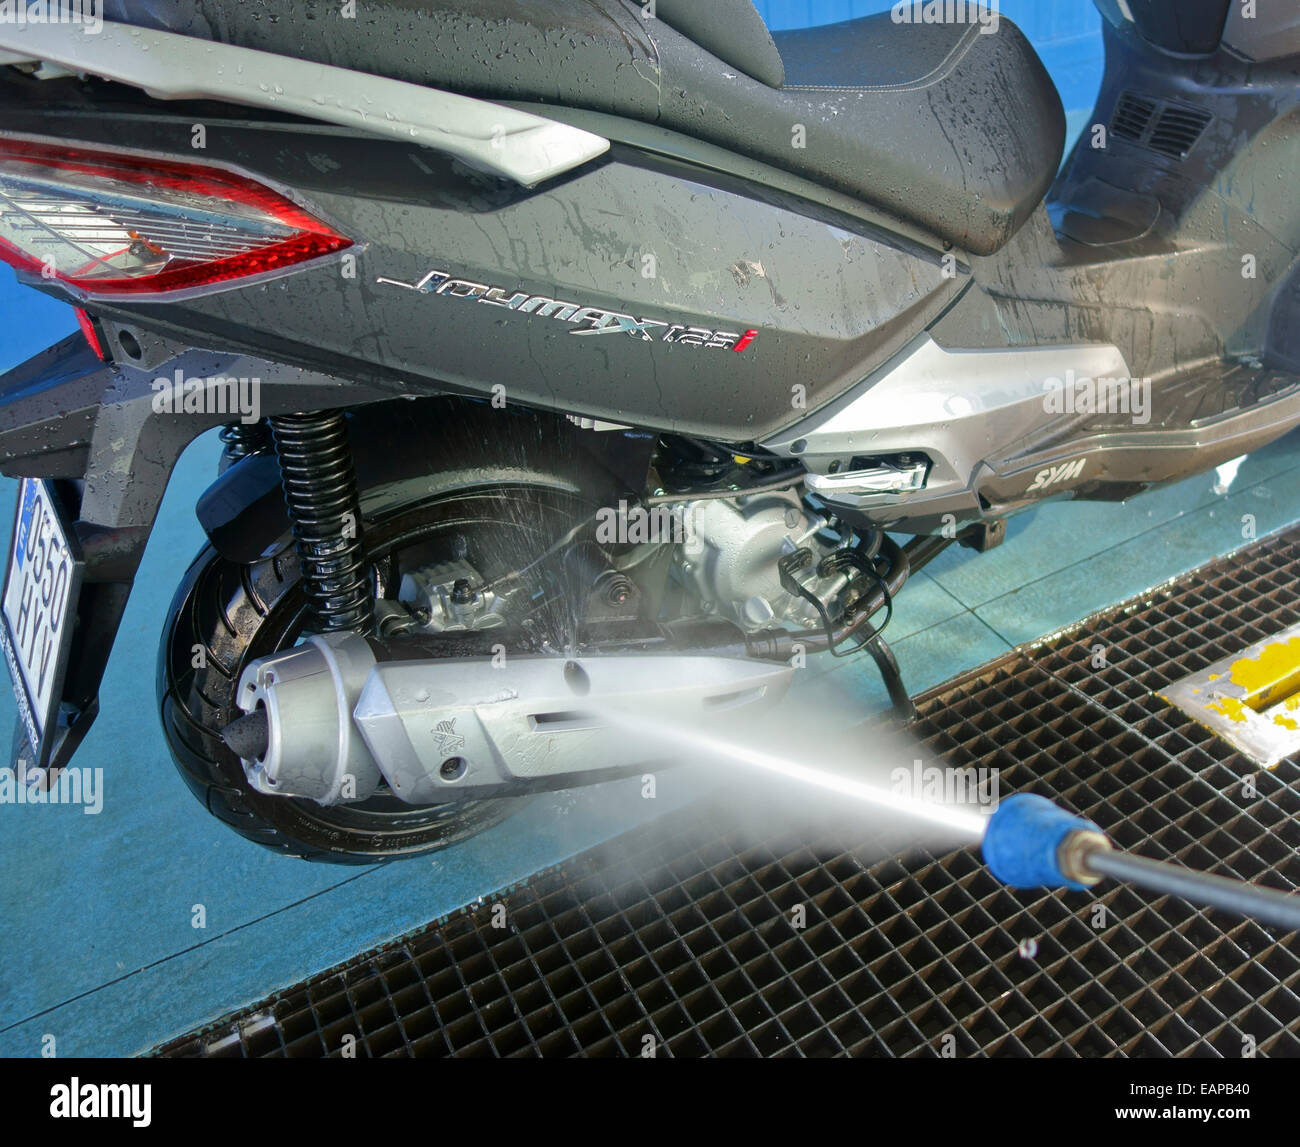 Cleaning a bike with high pressure pump at sel.service station in Spain. - Stock Image